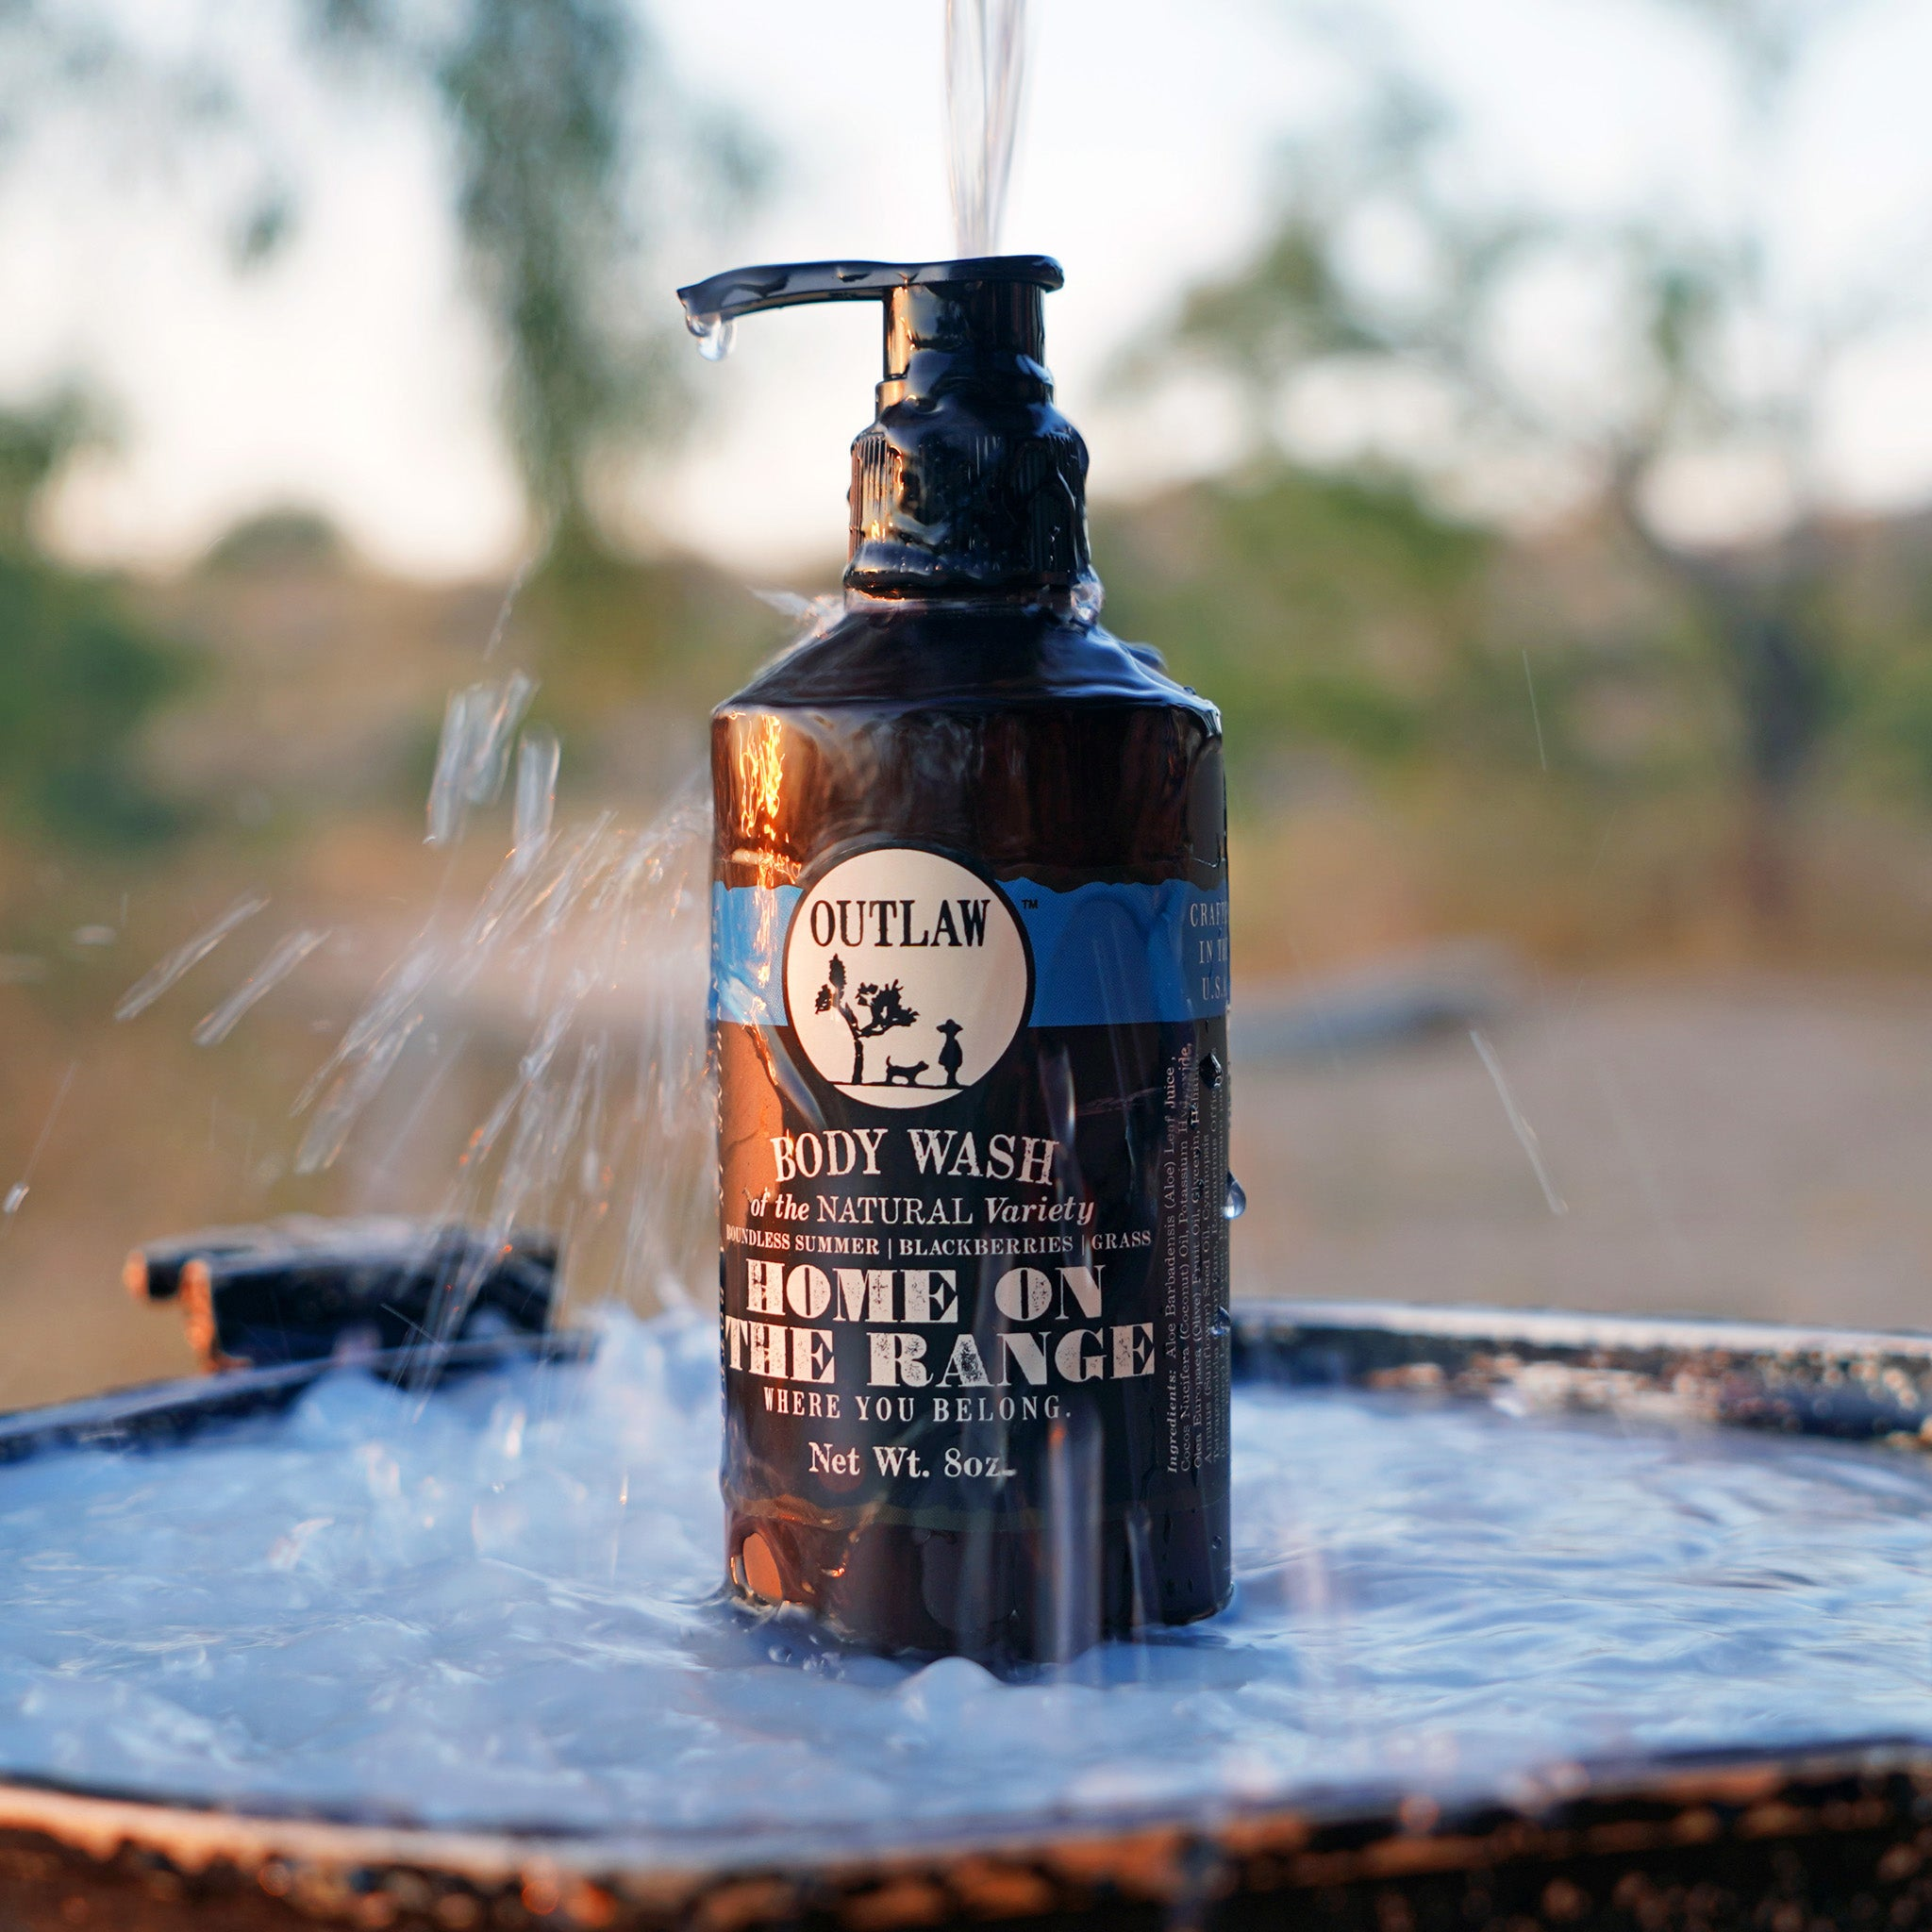 Outlaw mens and womens body wash